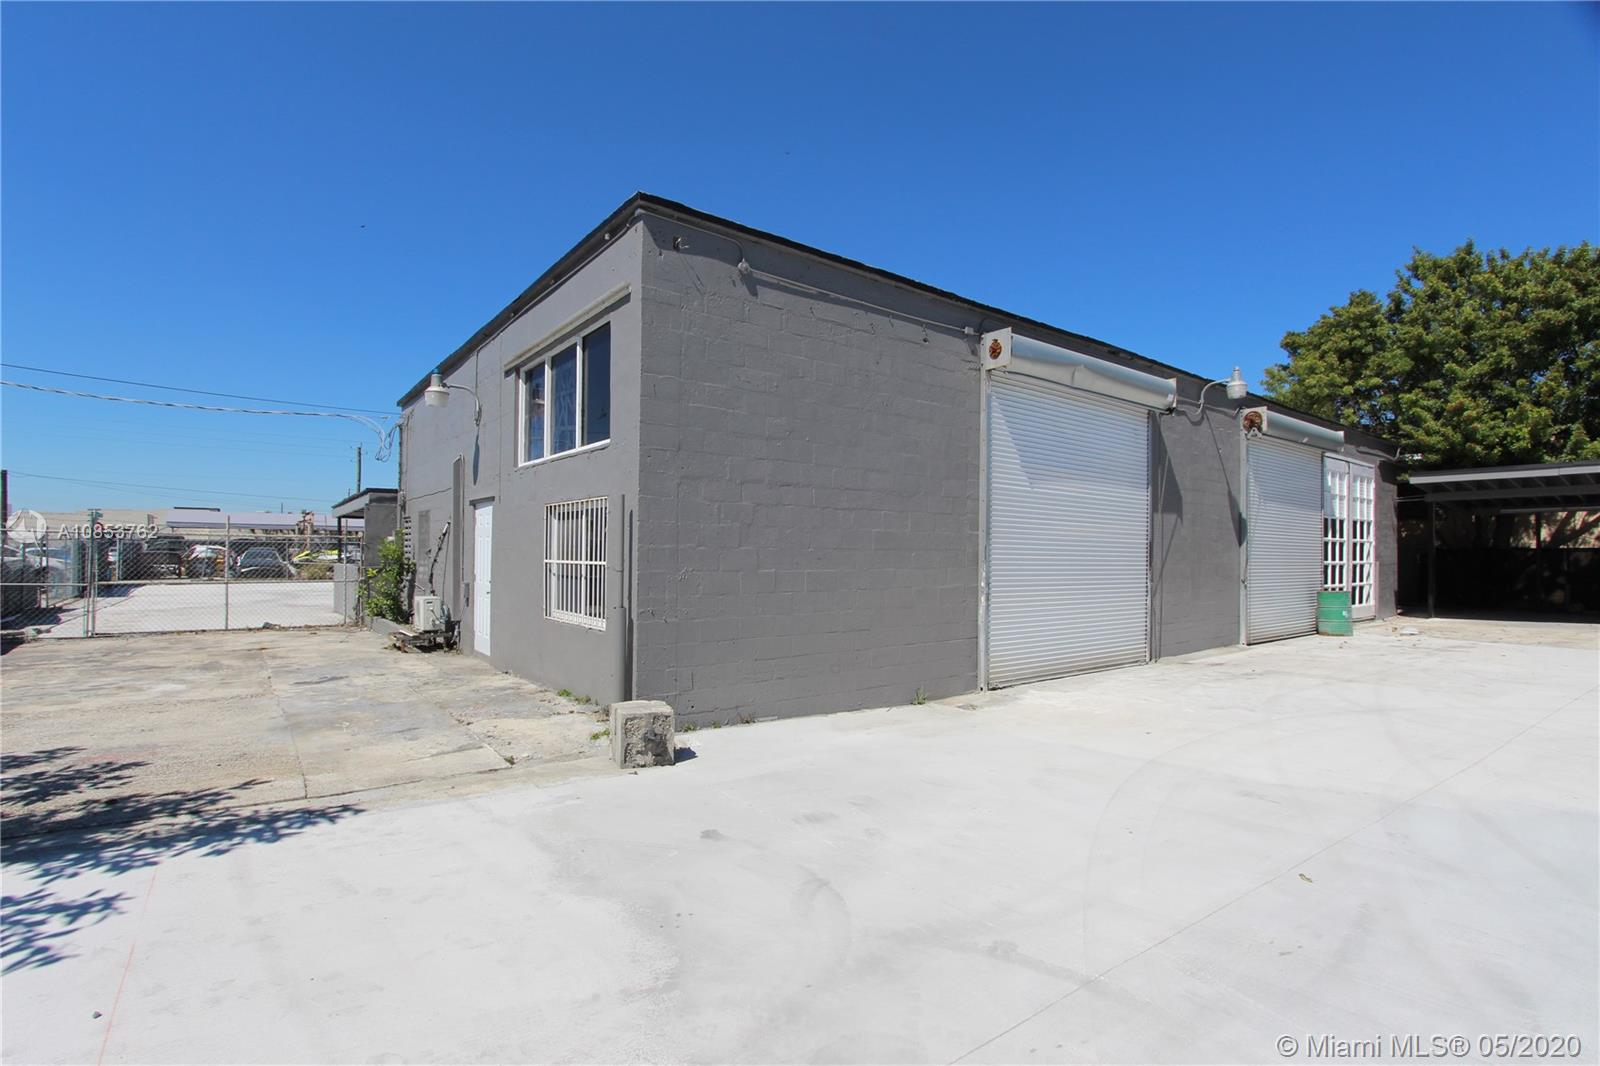 3665 NW 48th St, Miami, Florida 33142, ,Commercial Land,For Sale,3665 NW 48th St,A10853762